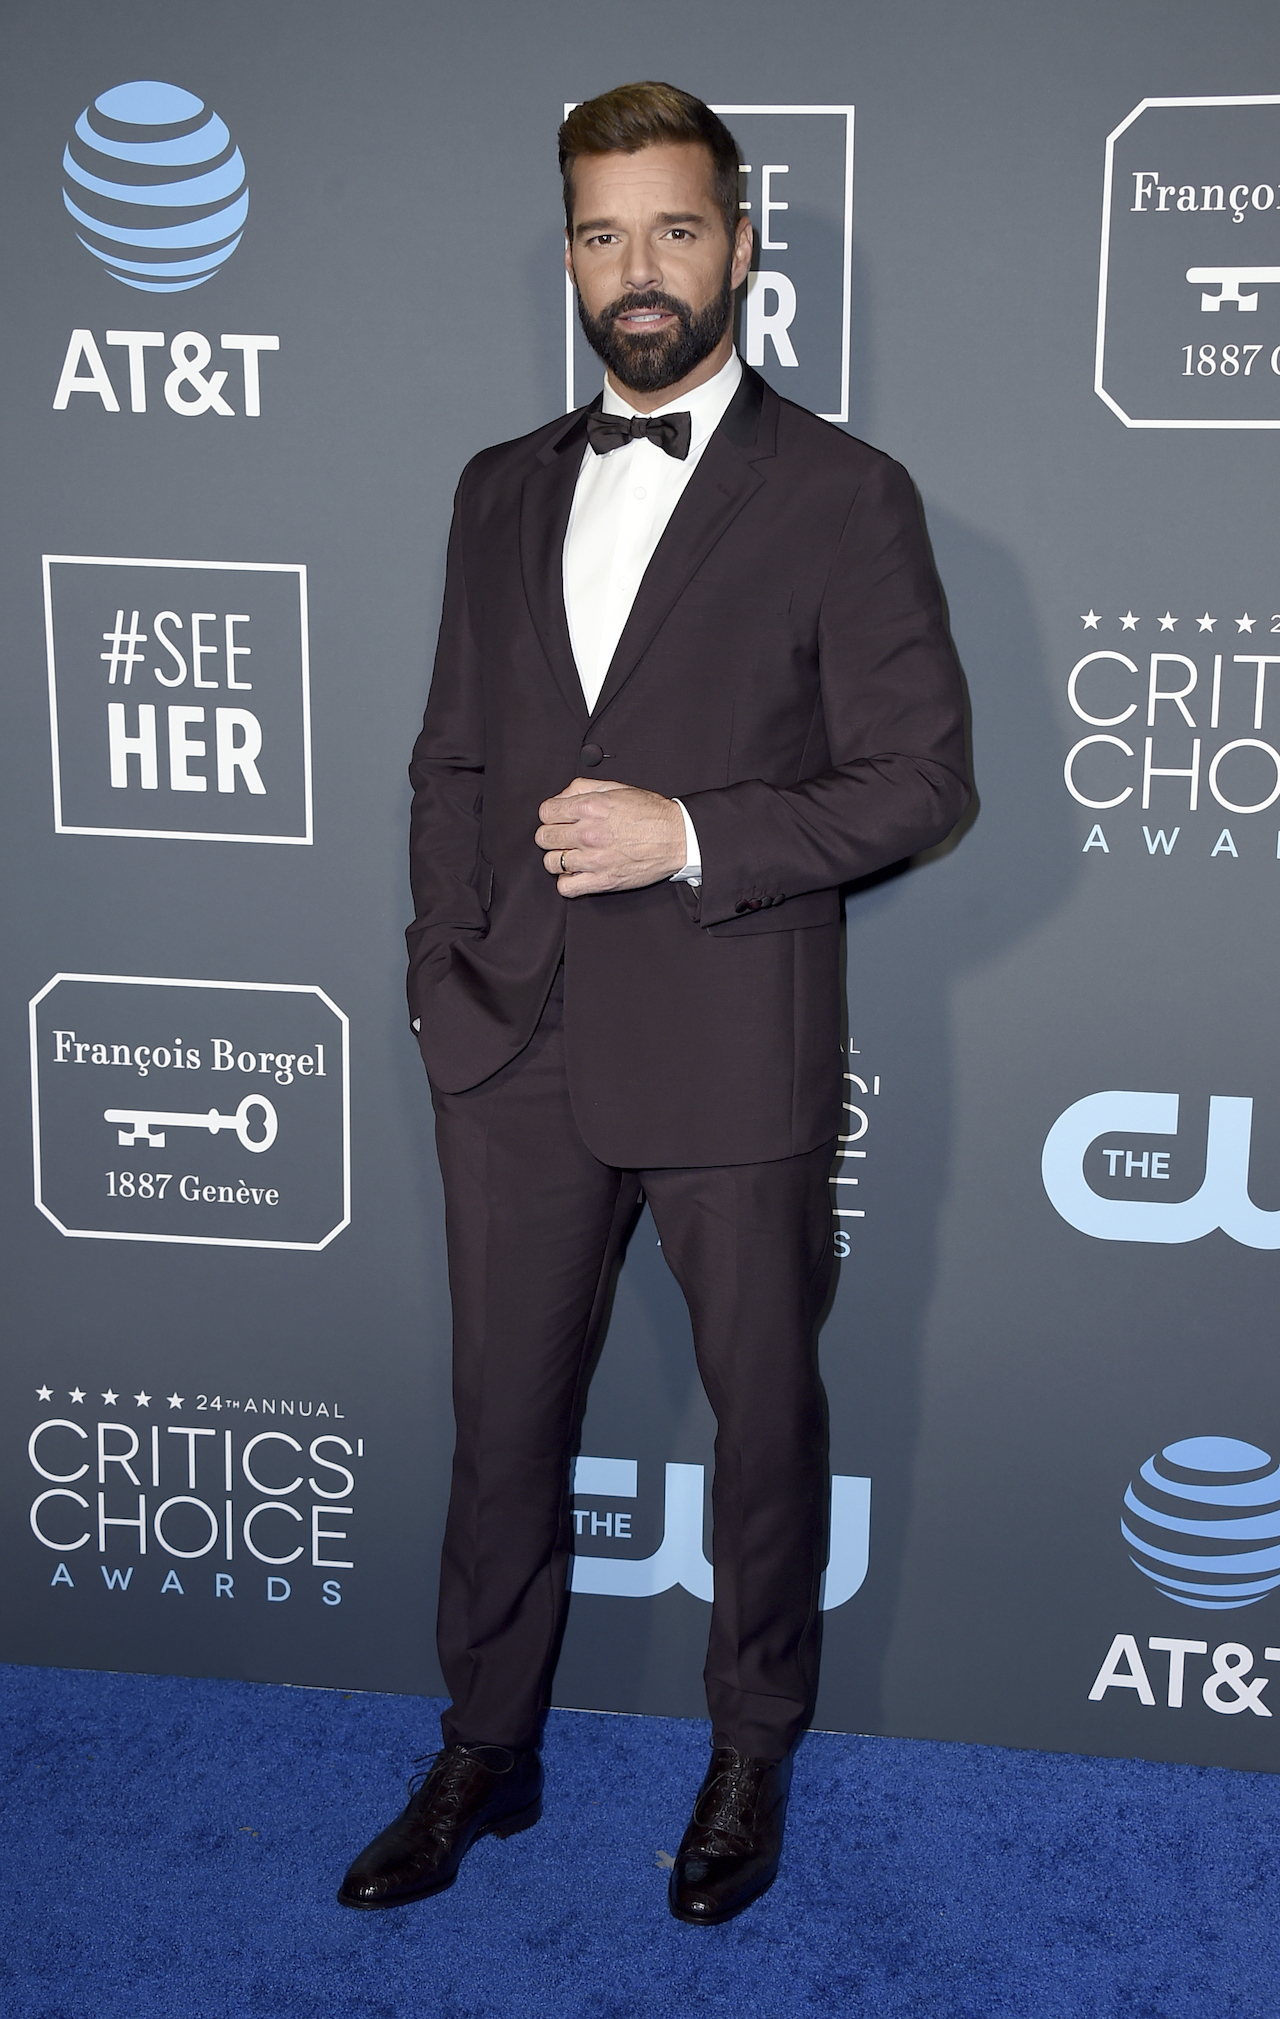 <div class='meta'><div class='origin-logo' data-origin='AP'></div><span class='caption-text' data-credit='Jordan Strauss/Invision/AP'>Ricky Martin arrives at the 24th annual Critics' Choice Awards on Sunday, Jan. 13, 2019, at the Barker Hangar in Santa Monica, Calif.</span></div>